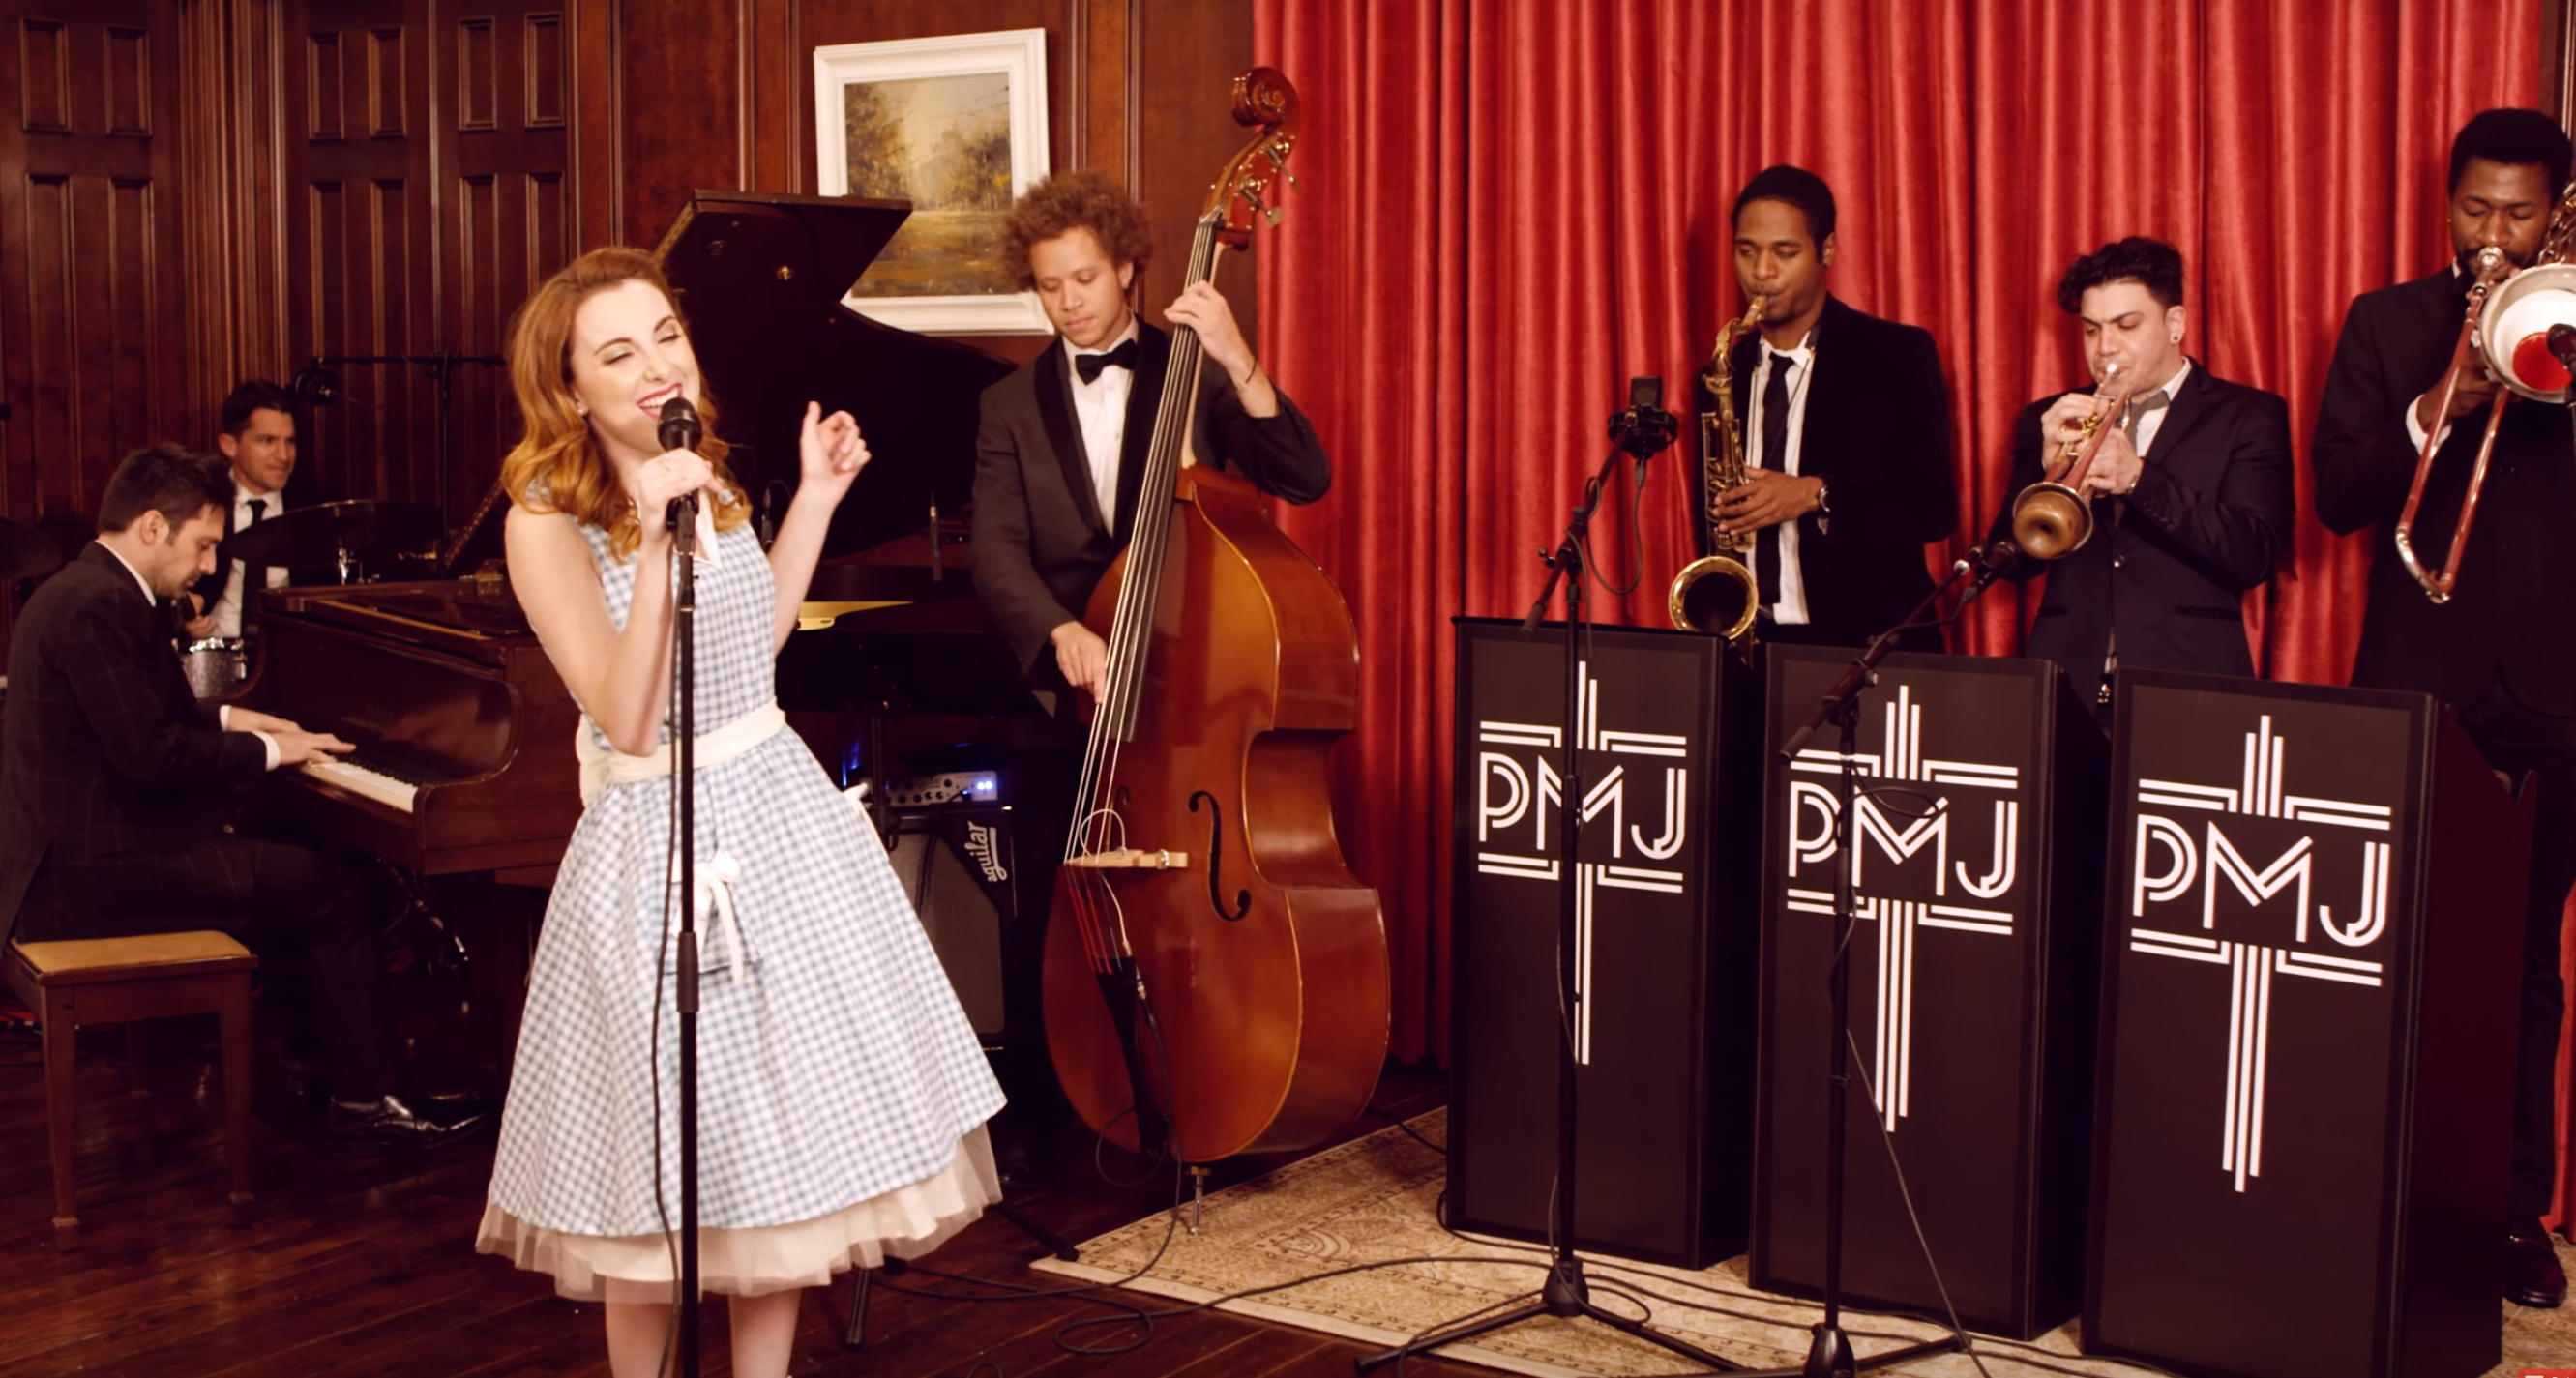 Teenage Dream – Katy Perry (Vintage Big Band Cover) ft. Juliette Goglia